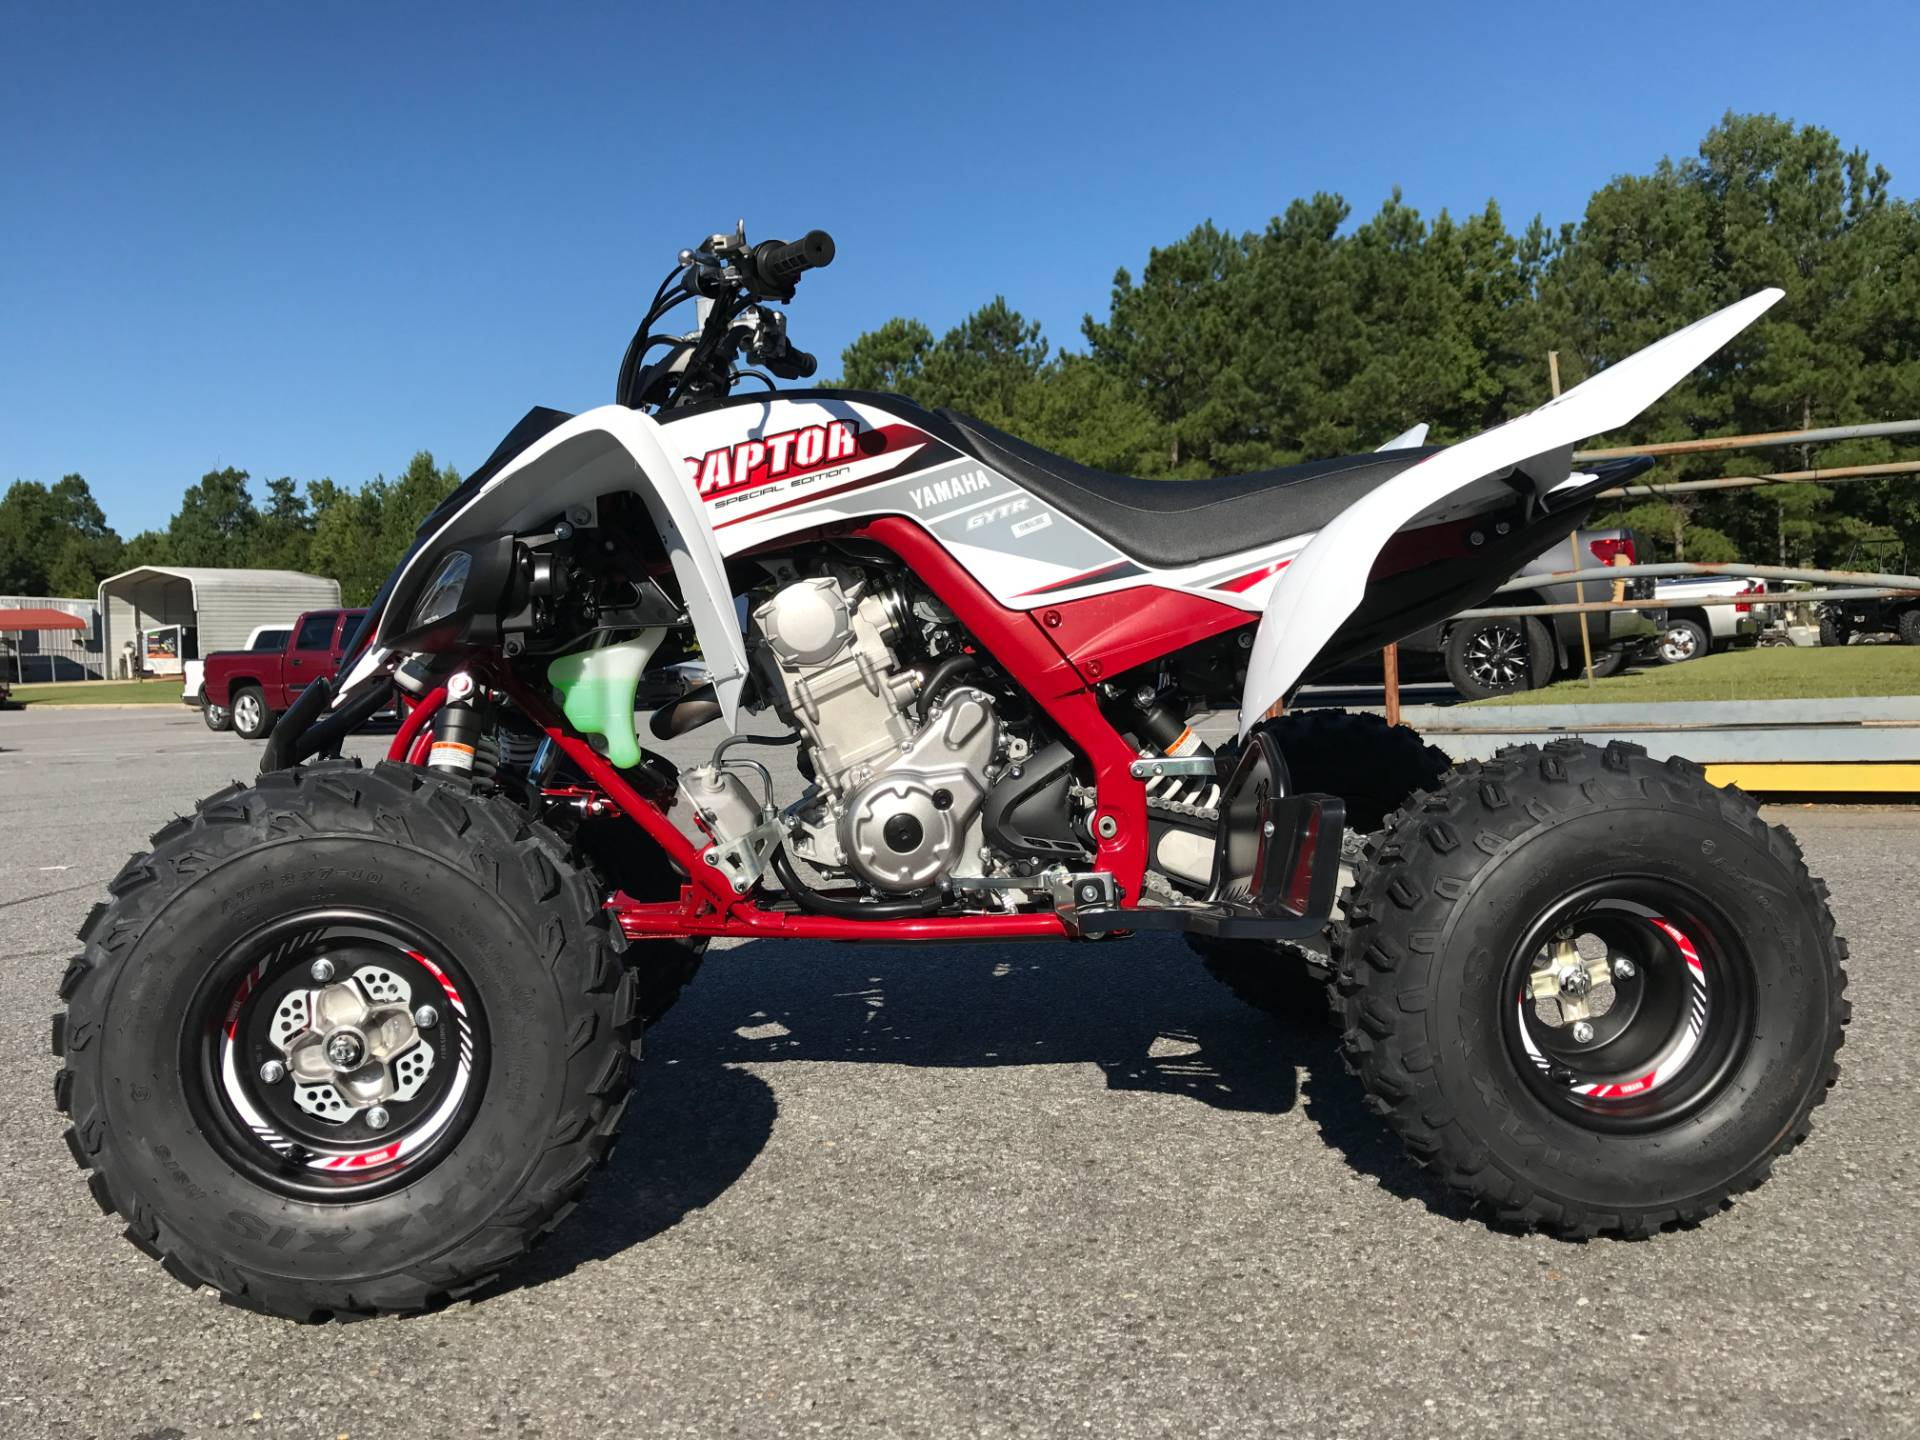 New 2018 yamaha raptor 700r se atvs in greenville nc for Yamaha north county